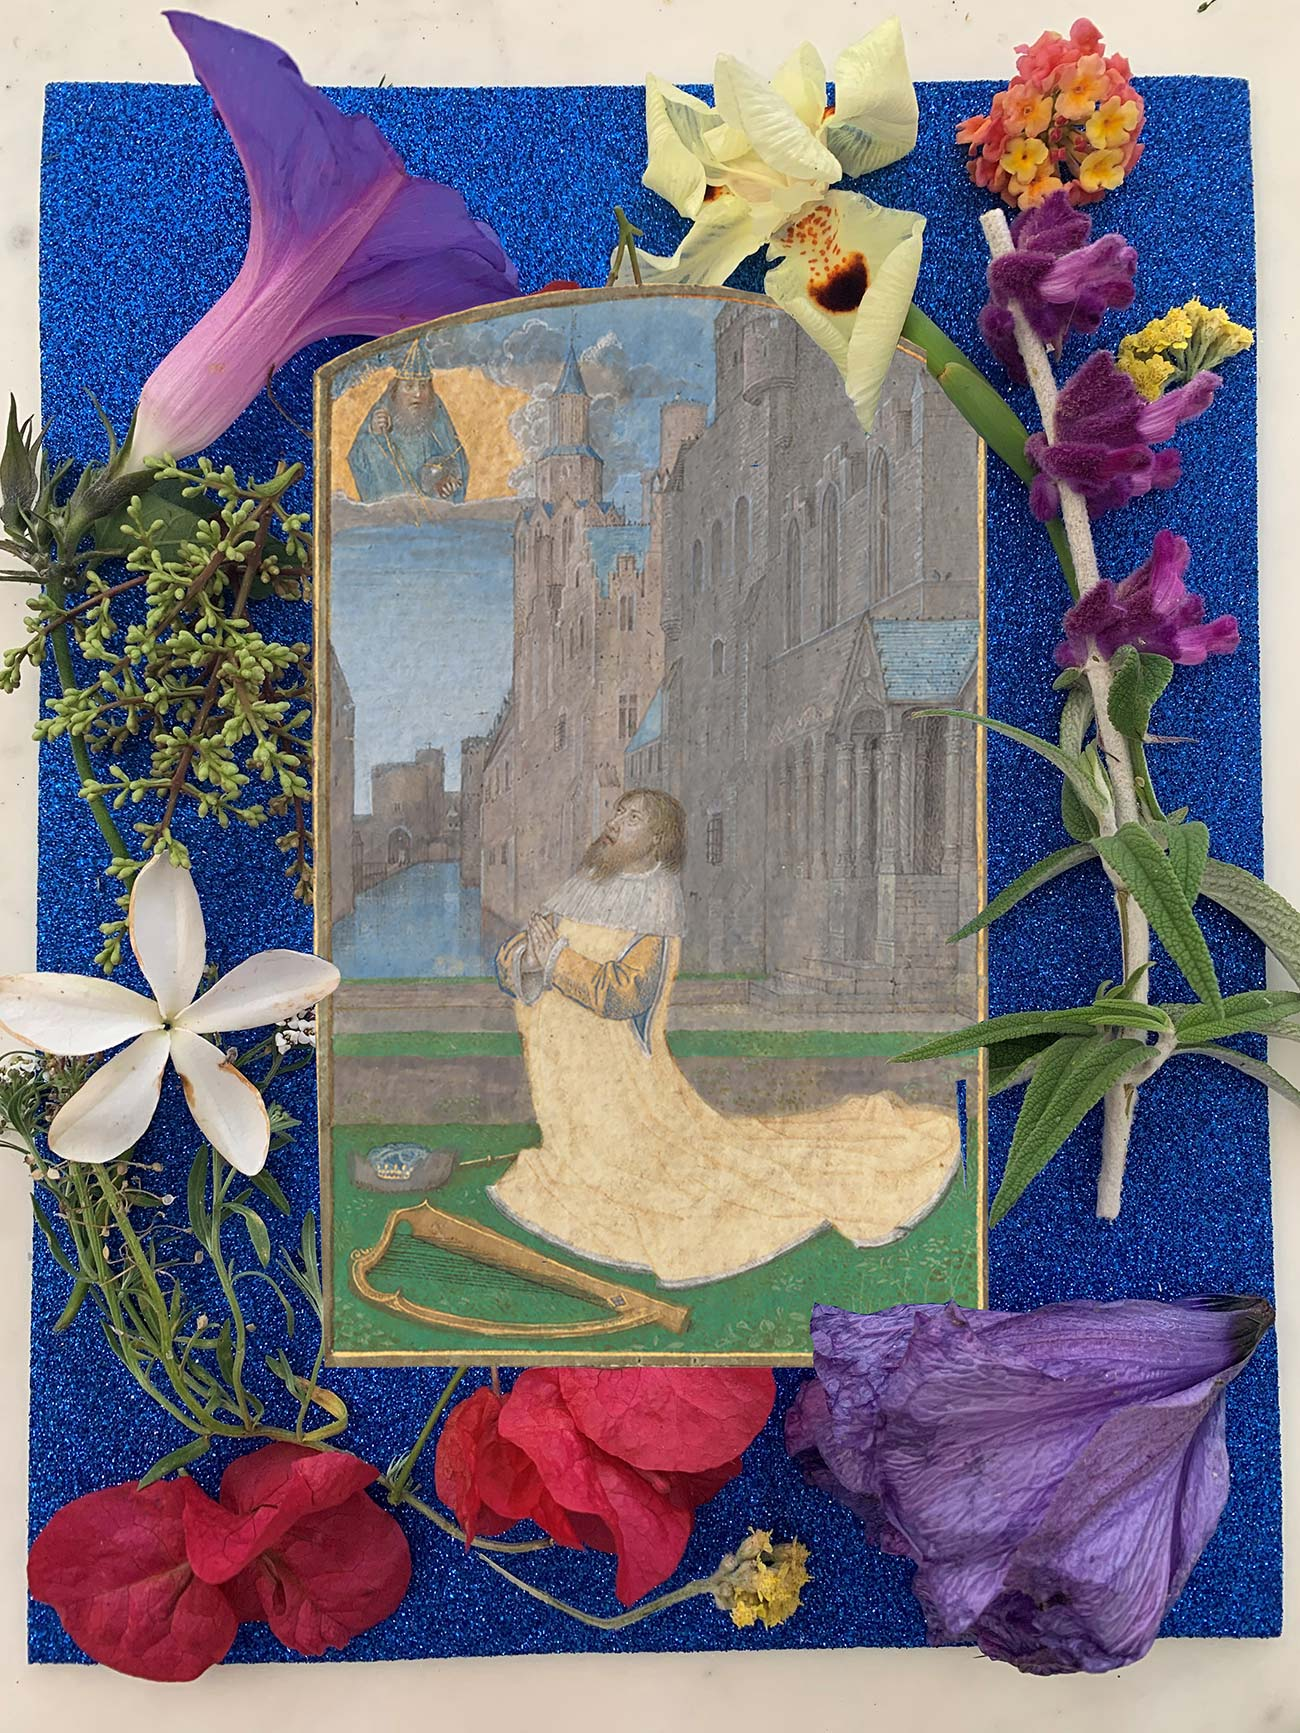 Glittery blue page with picture of man praying in front of a castle in the center, surrounded by real flowers along the outside border